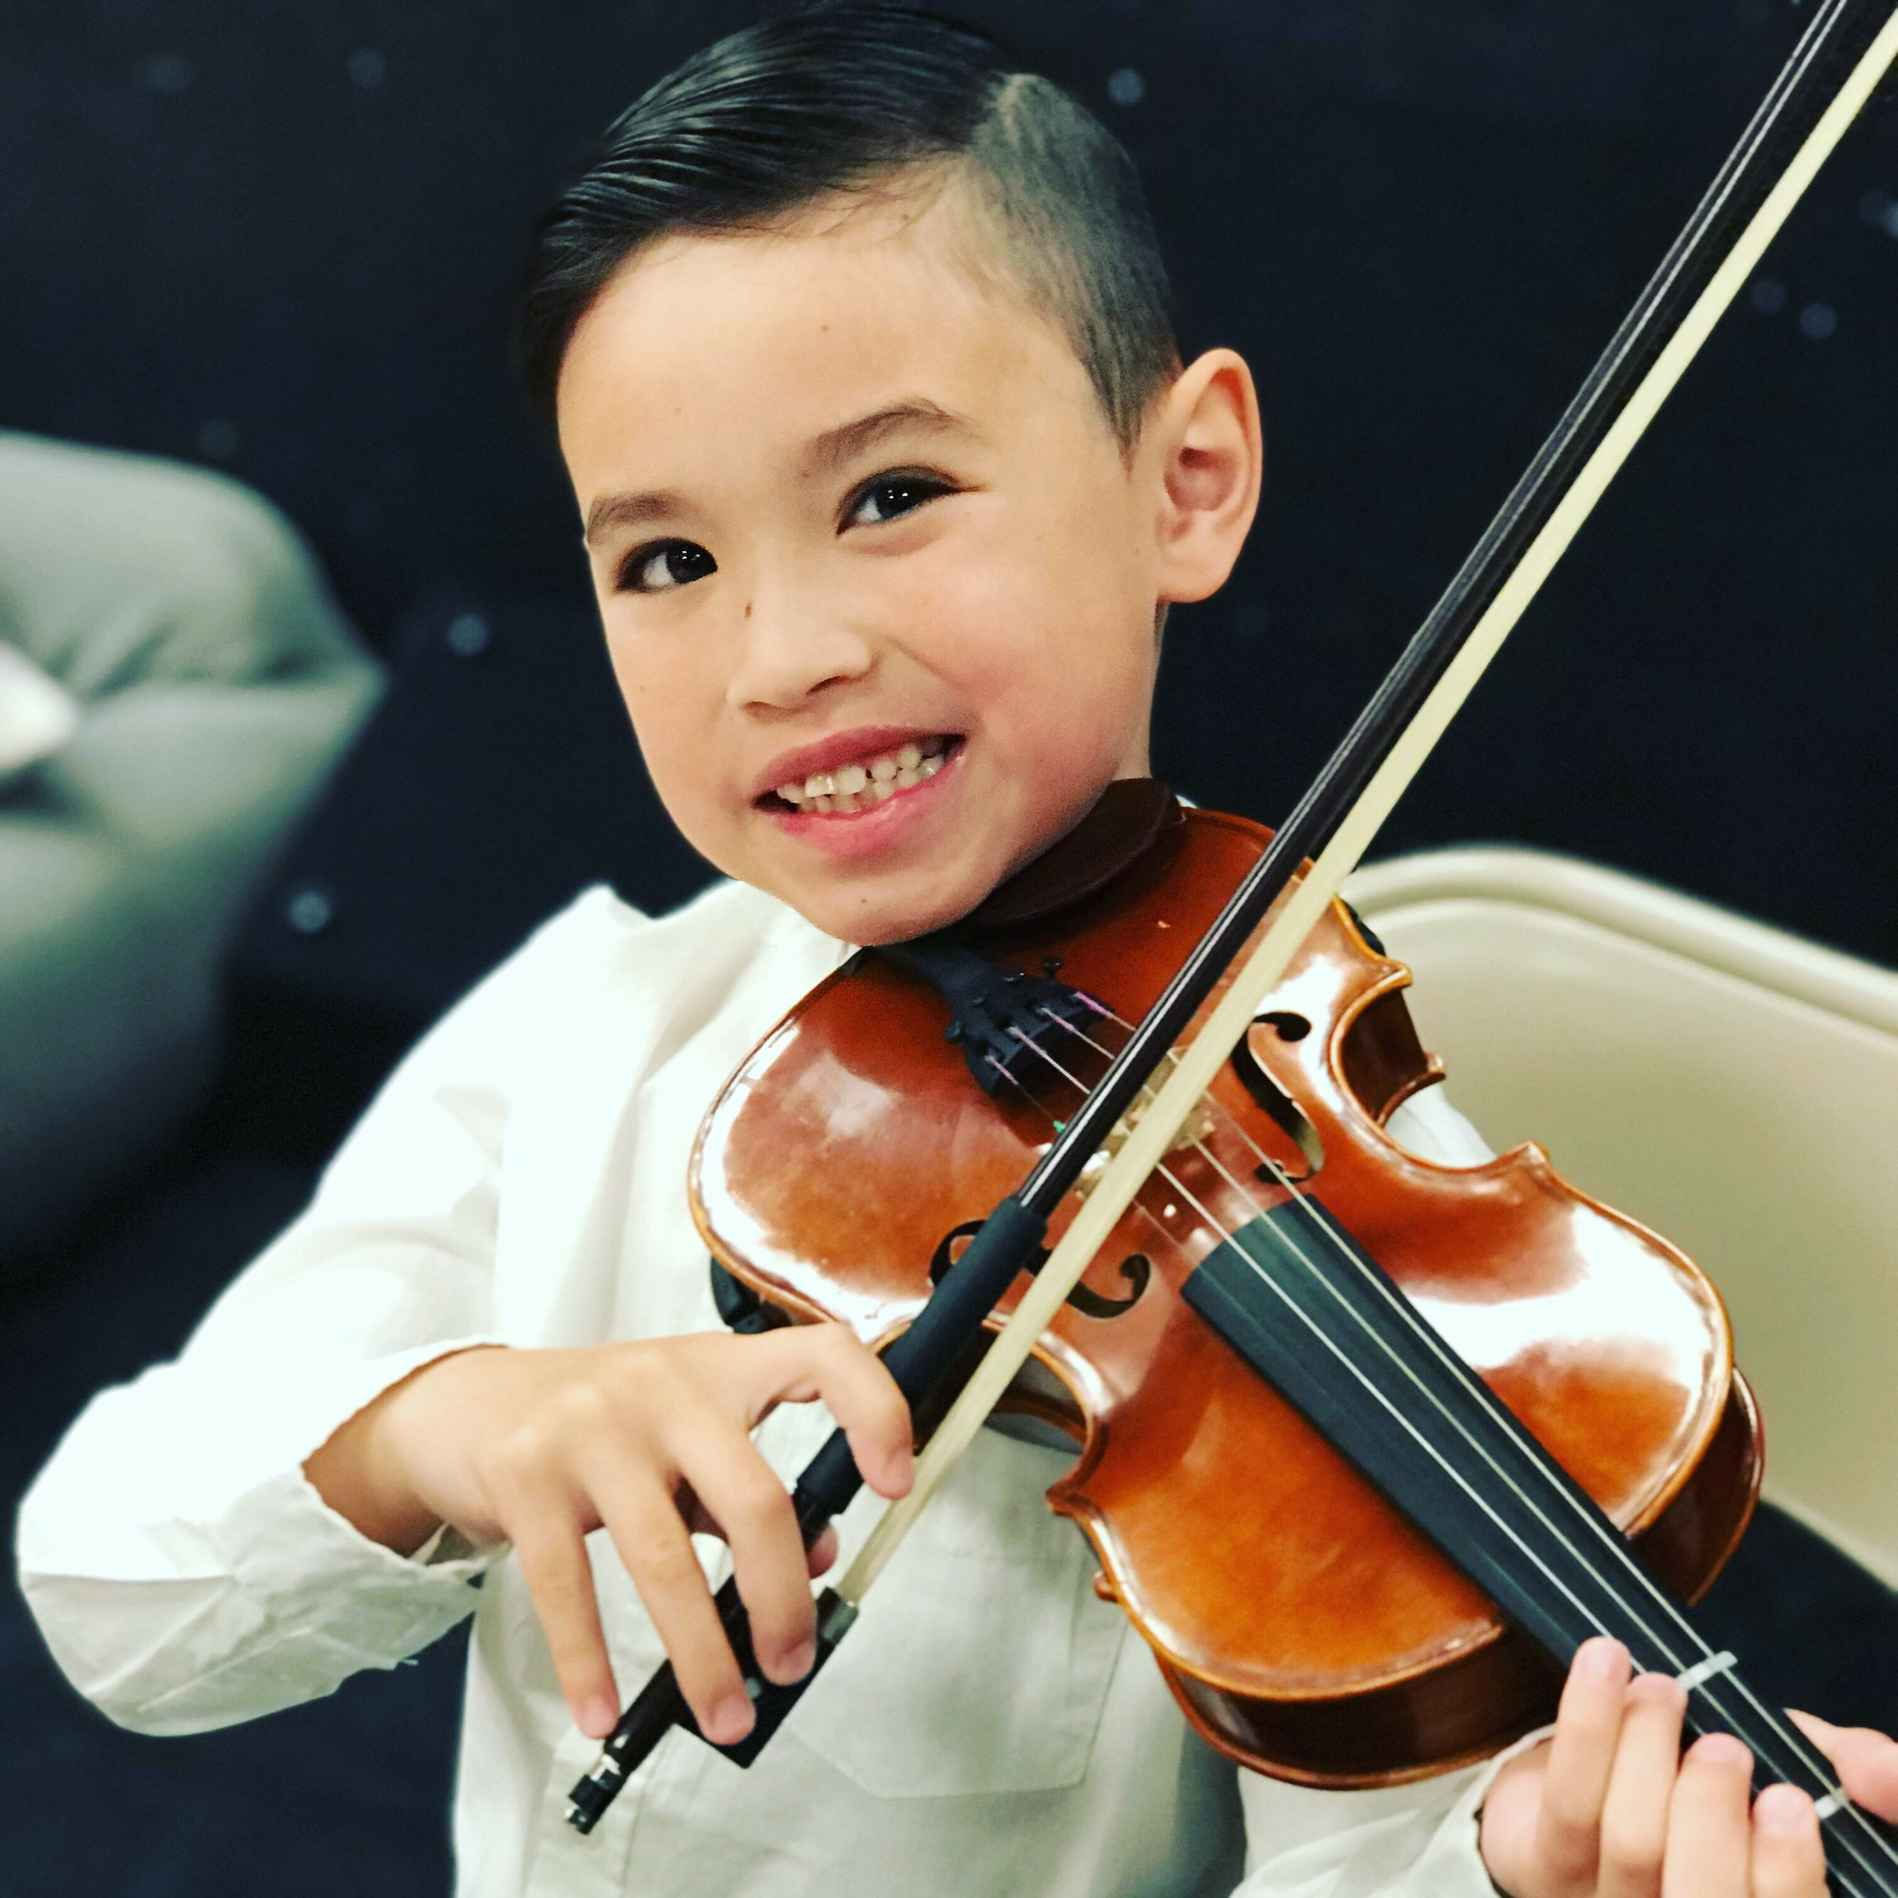 smiling boy playing violin